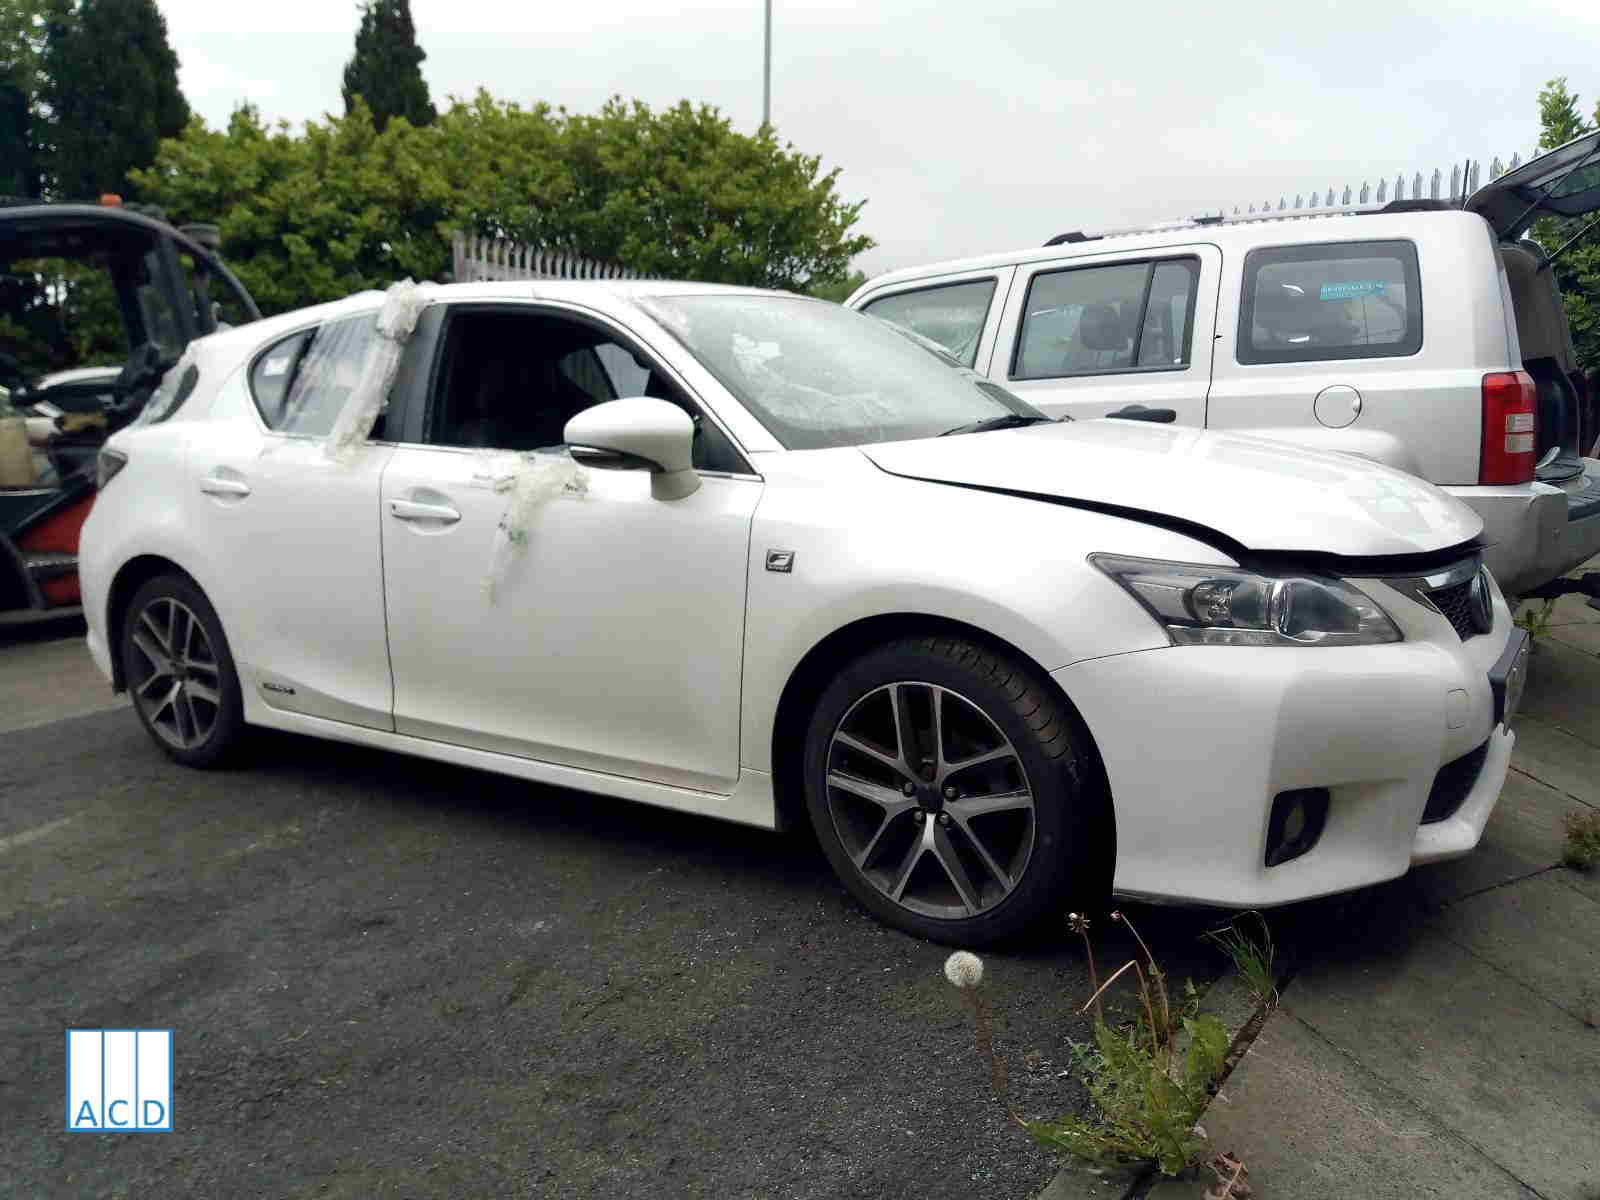 Lexus CT 200H 1.8L Petrol 1-Speed Automatic 2012 #3156 01